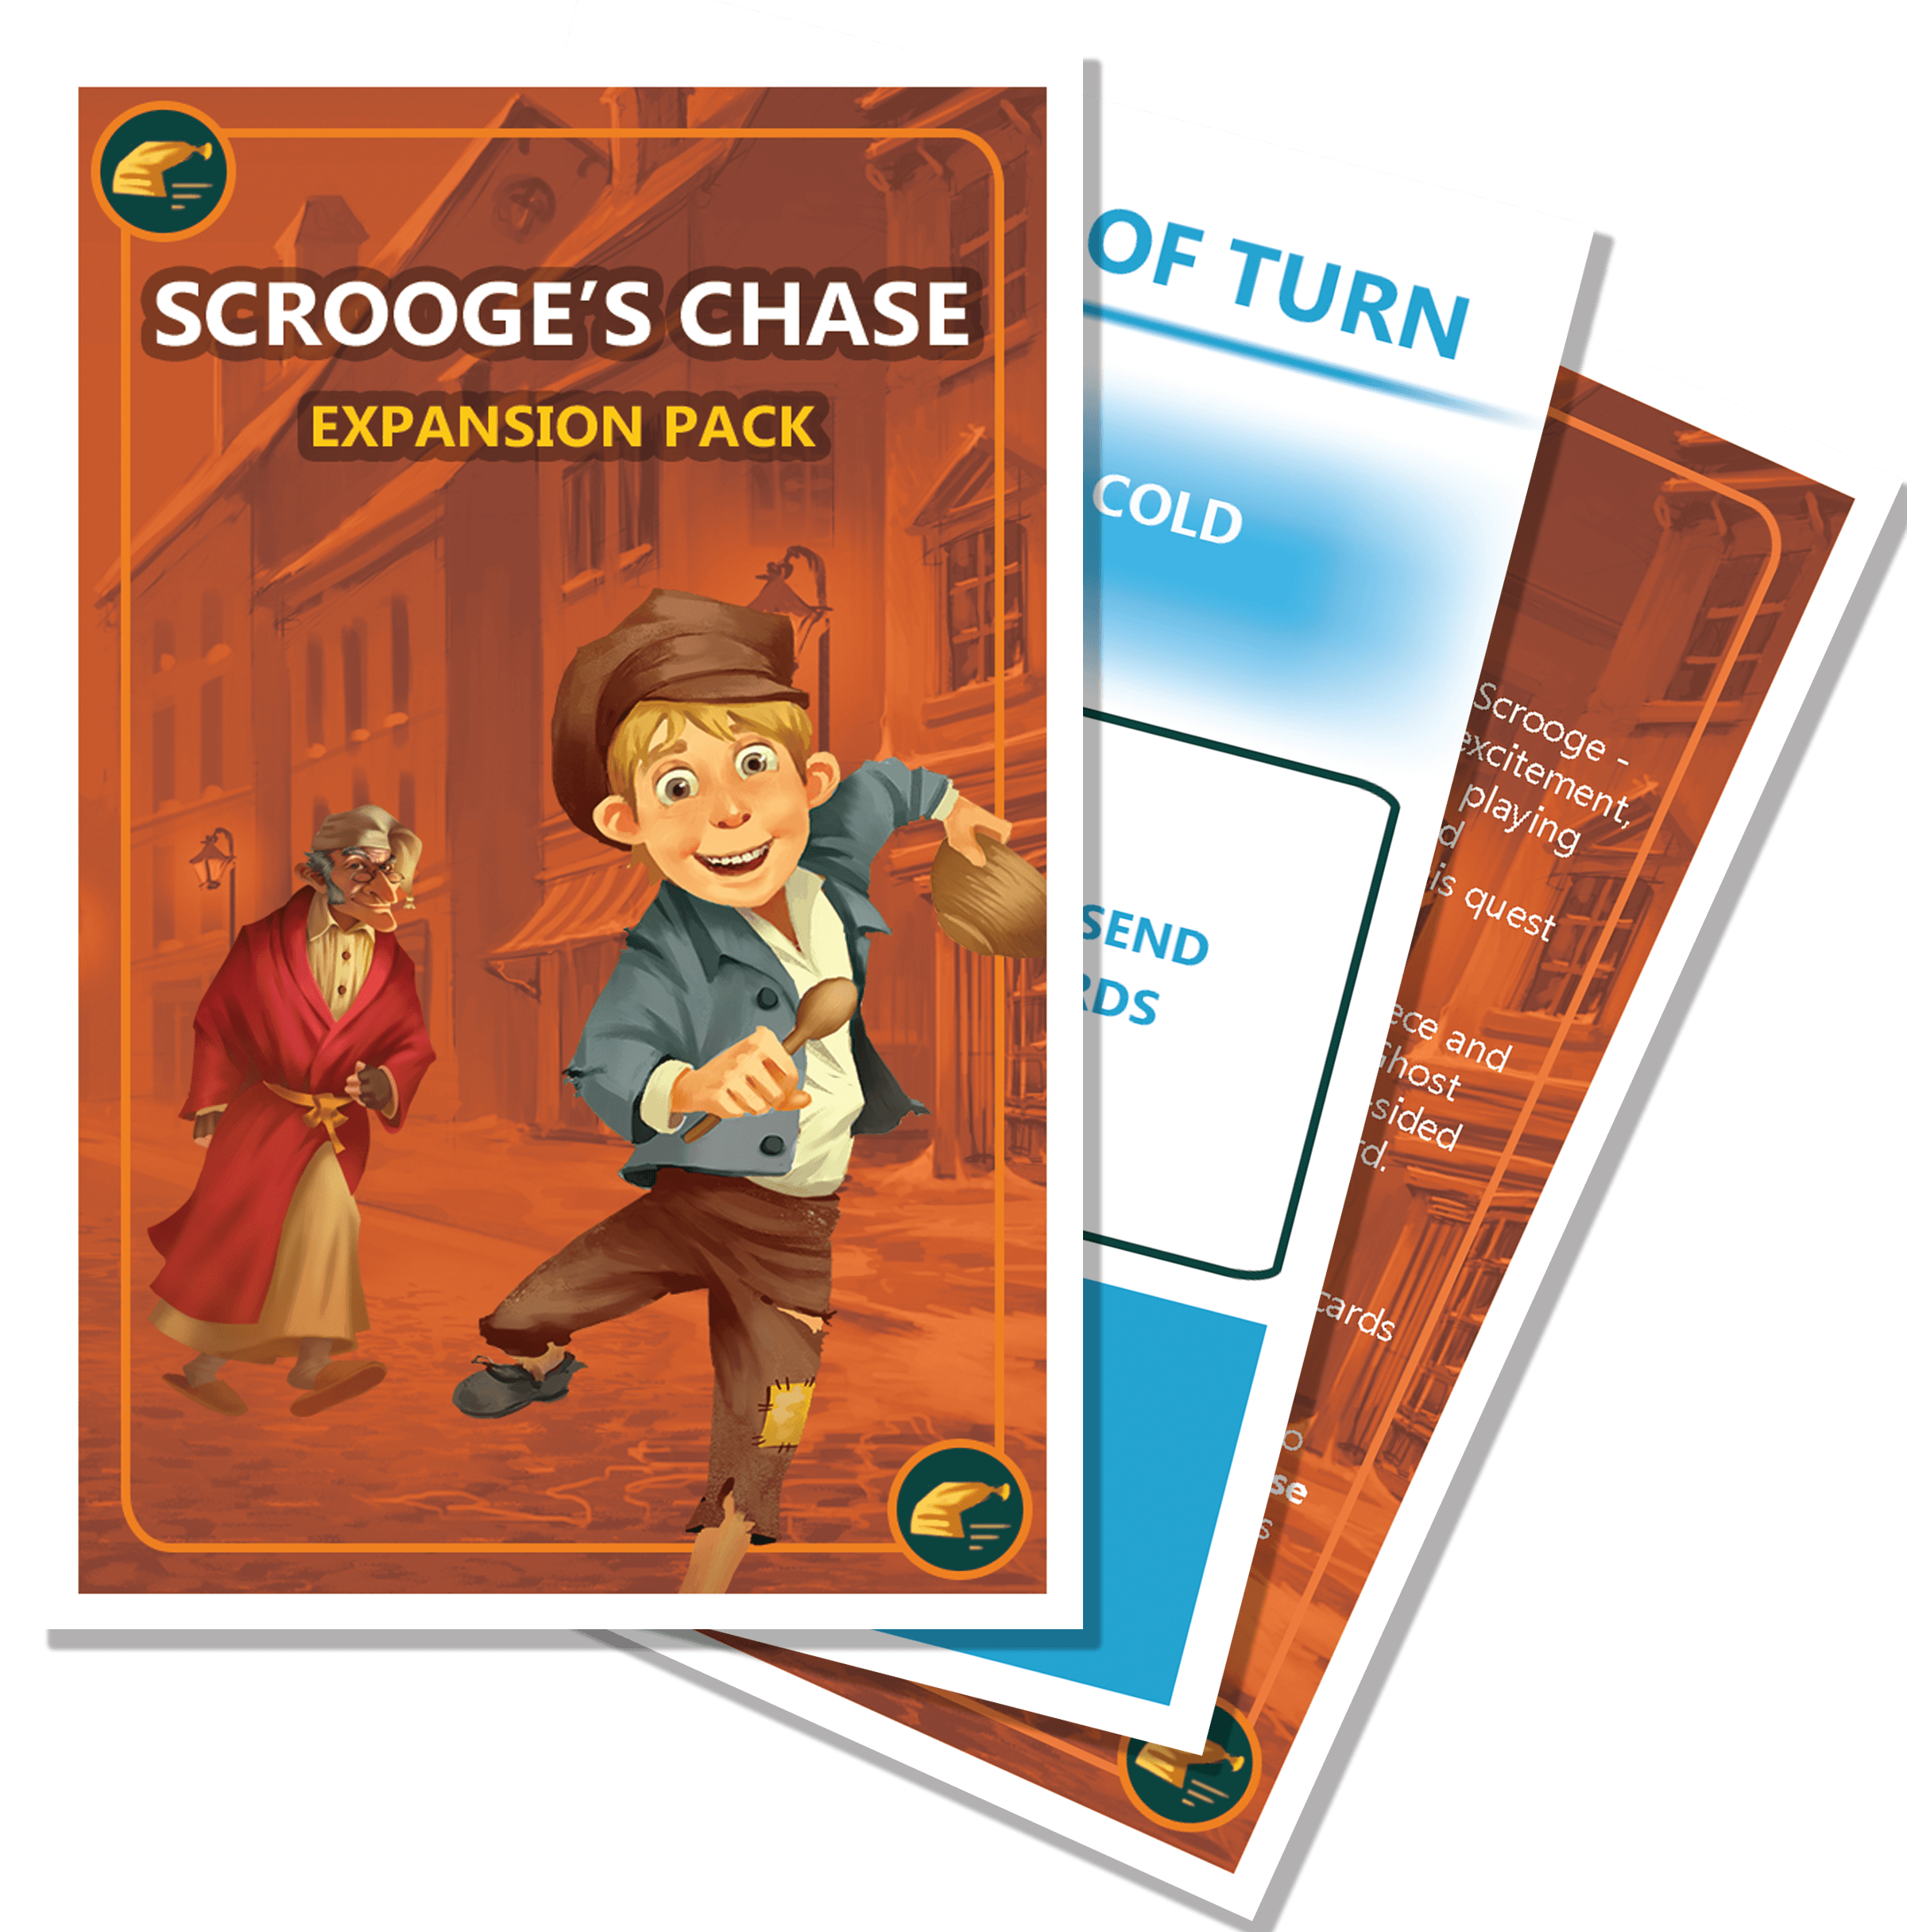 Scrooge's CHASE Expansion Pack